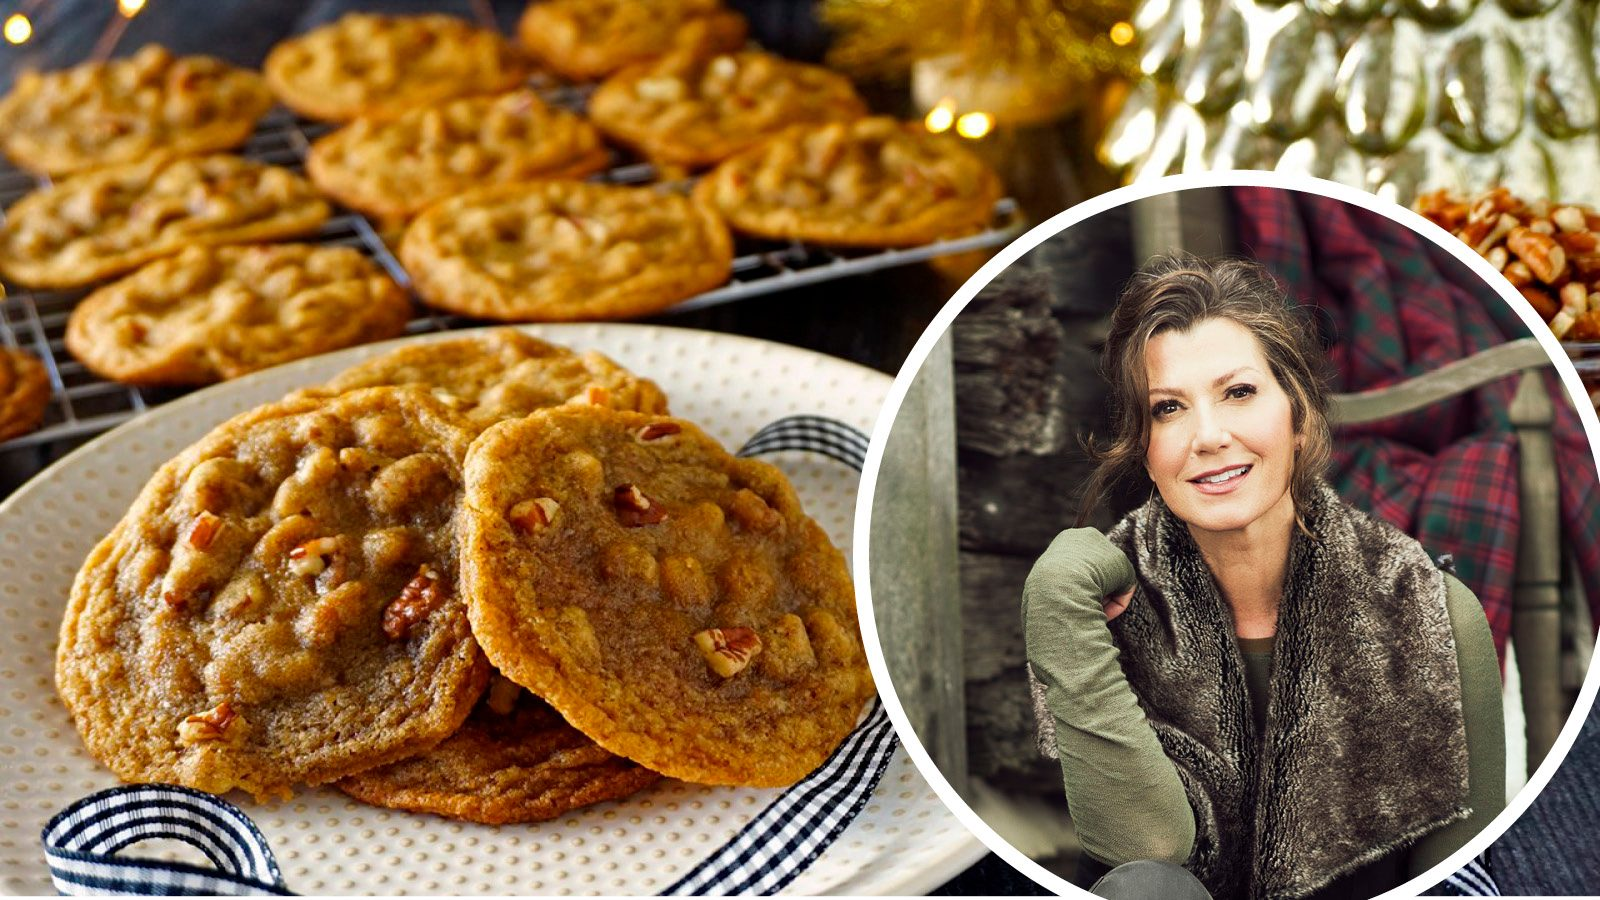 Amy Grant Shared Her Grandmother's Pecan Cookie Recipe. Here's How to Make It.